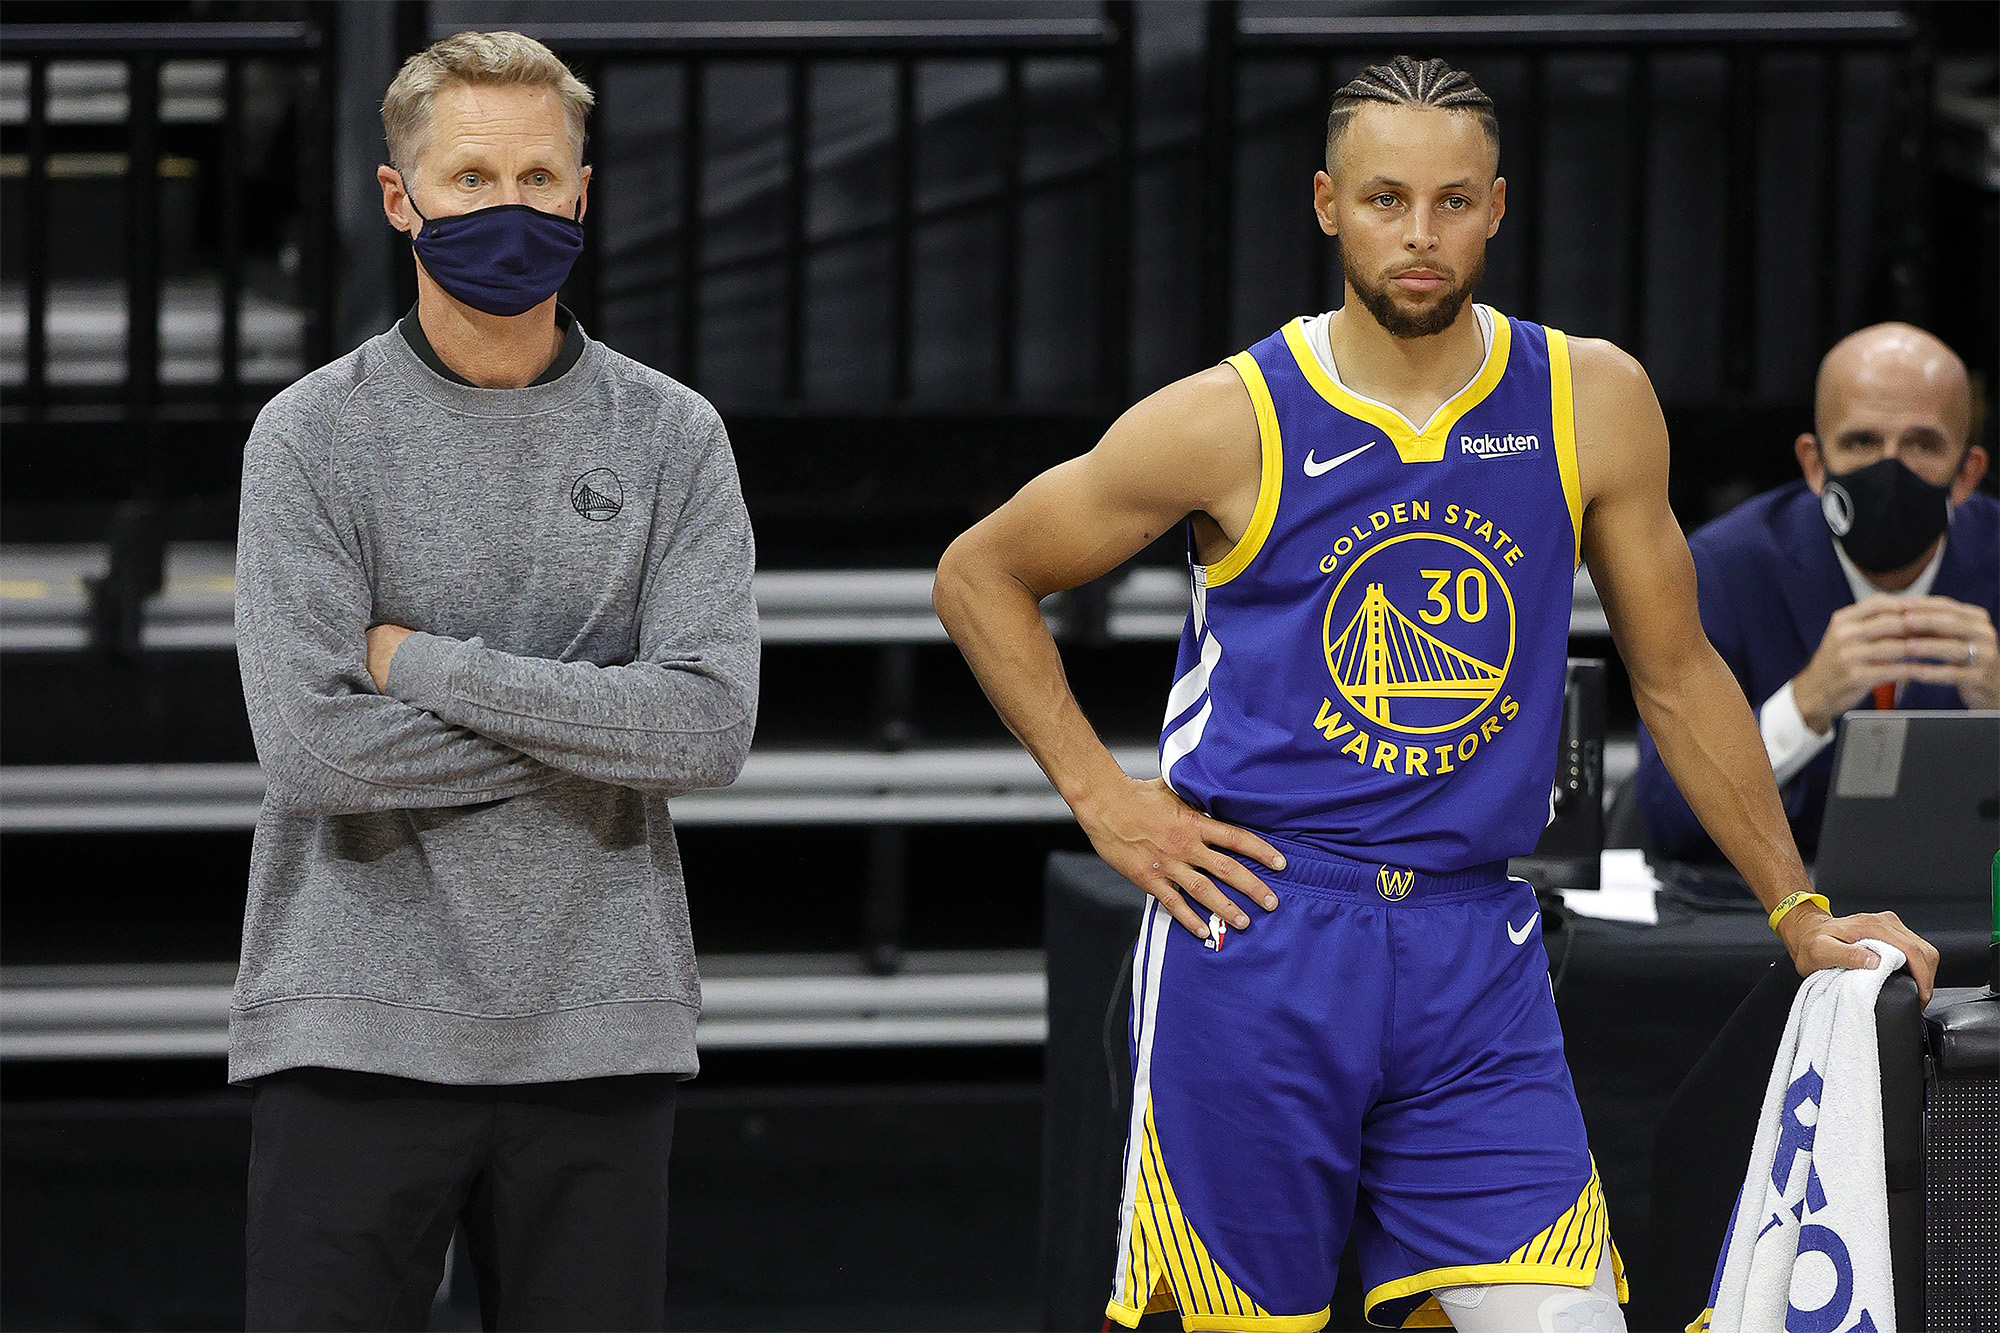 Demise of the Warriors keeps getting uglier